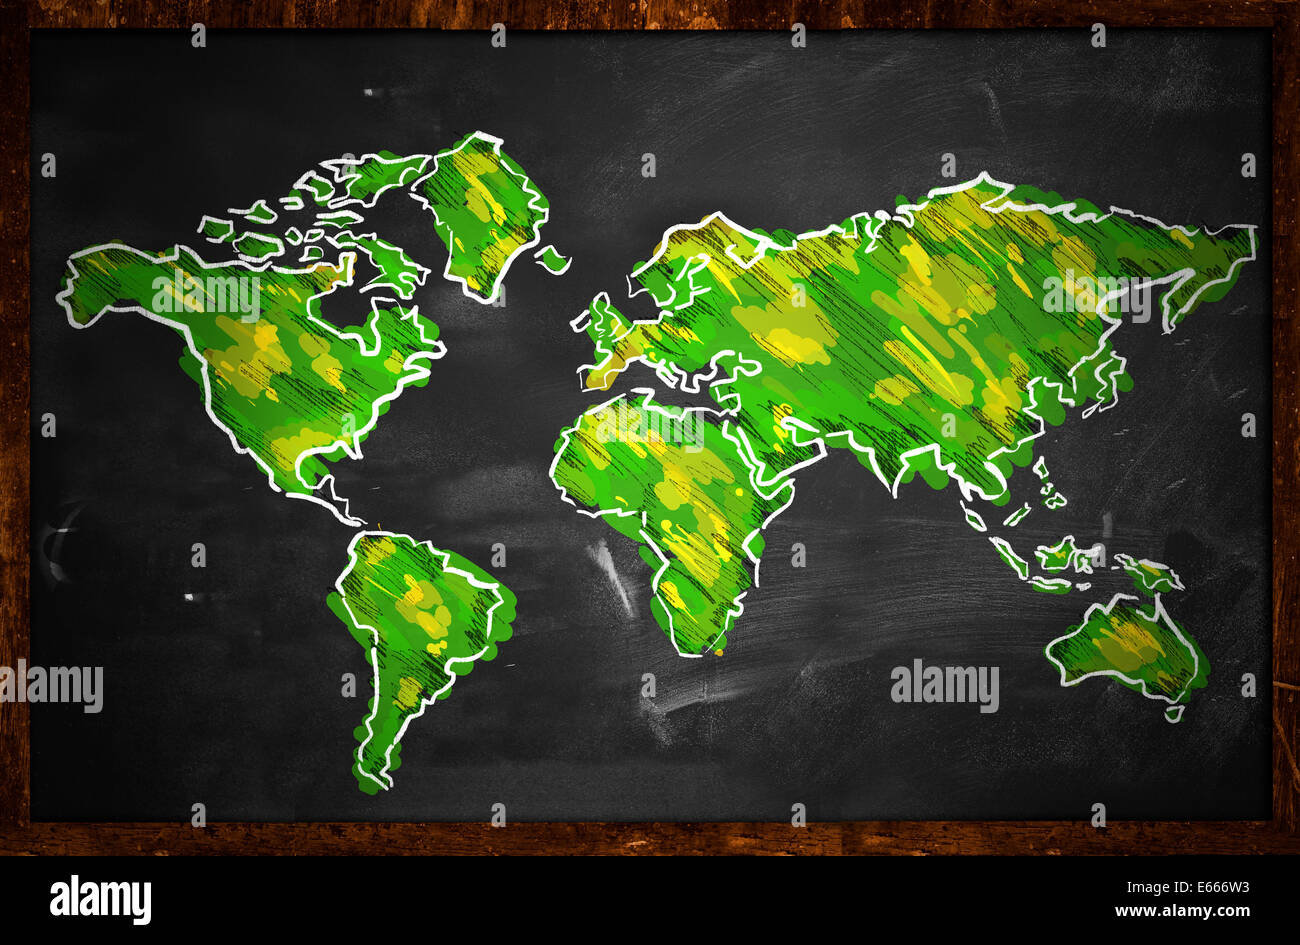 Line drawing world map stock photos line drawing world map stock green world map sketch on blackboard painting stock image gumiabroncs Choice Image